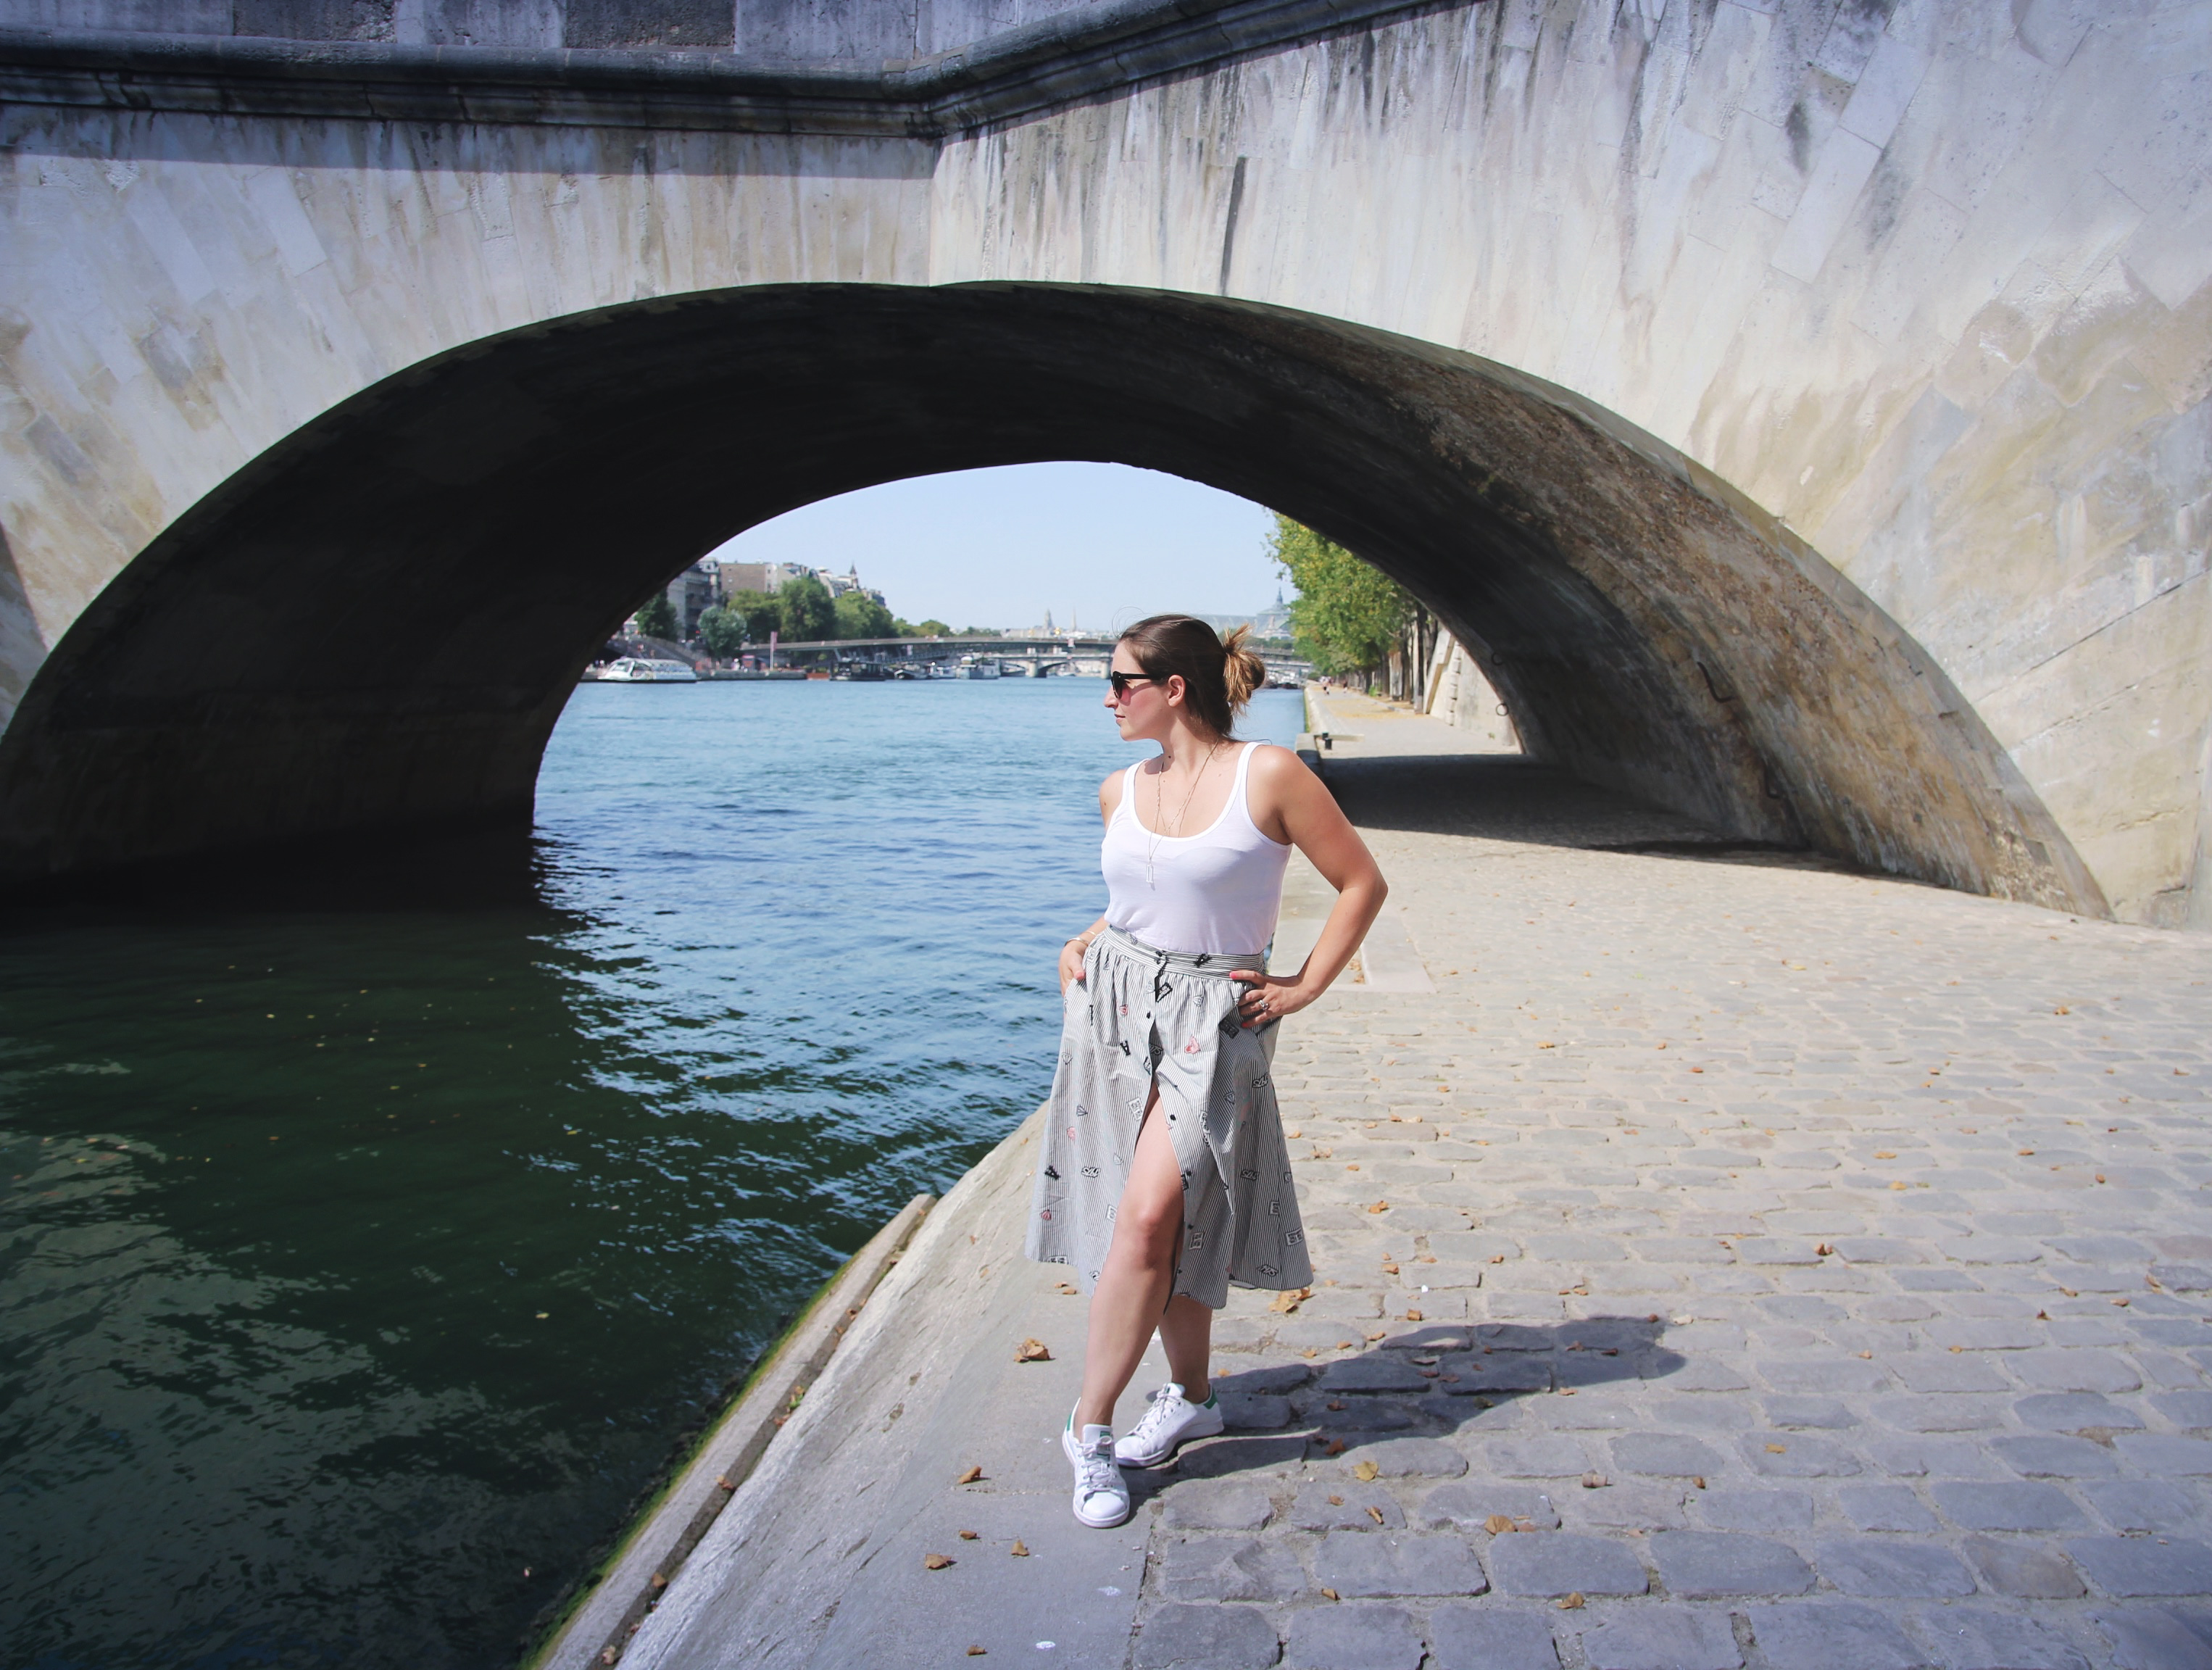 lookbook-oldschool-strip-skirt-fahionblogger-influencer-seralynepointcom-paris-bergesdeseine-4030